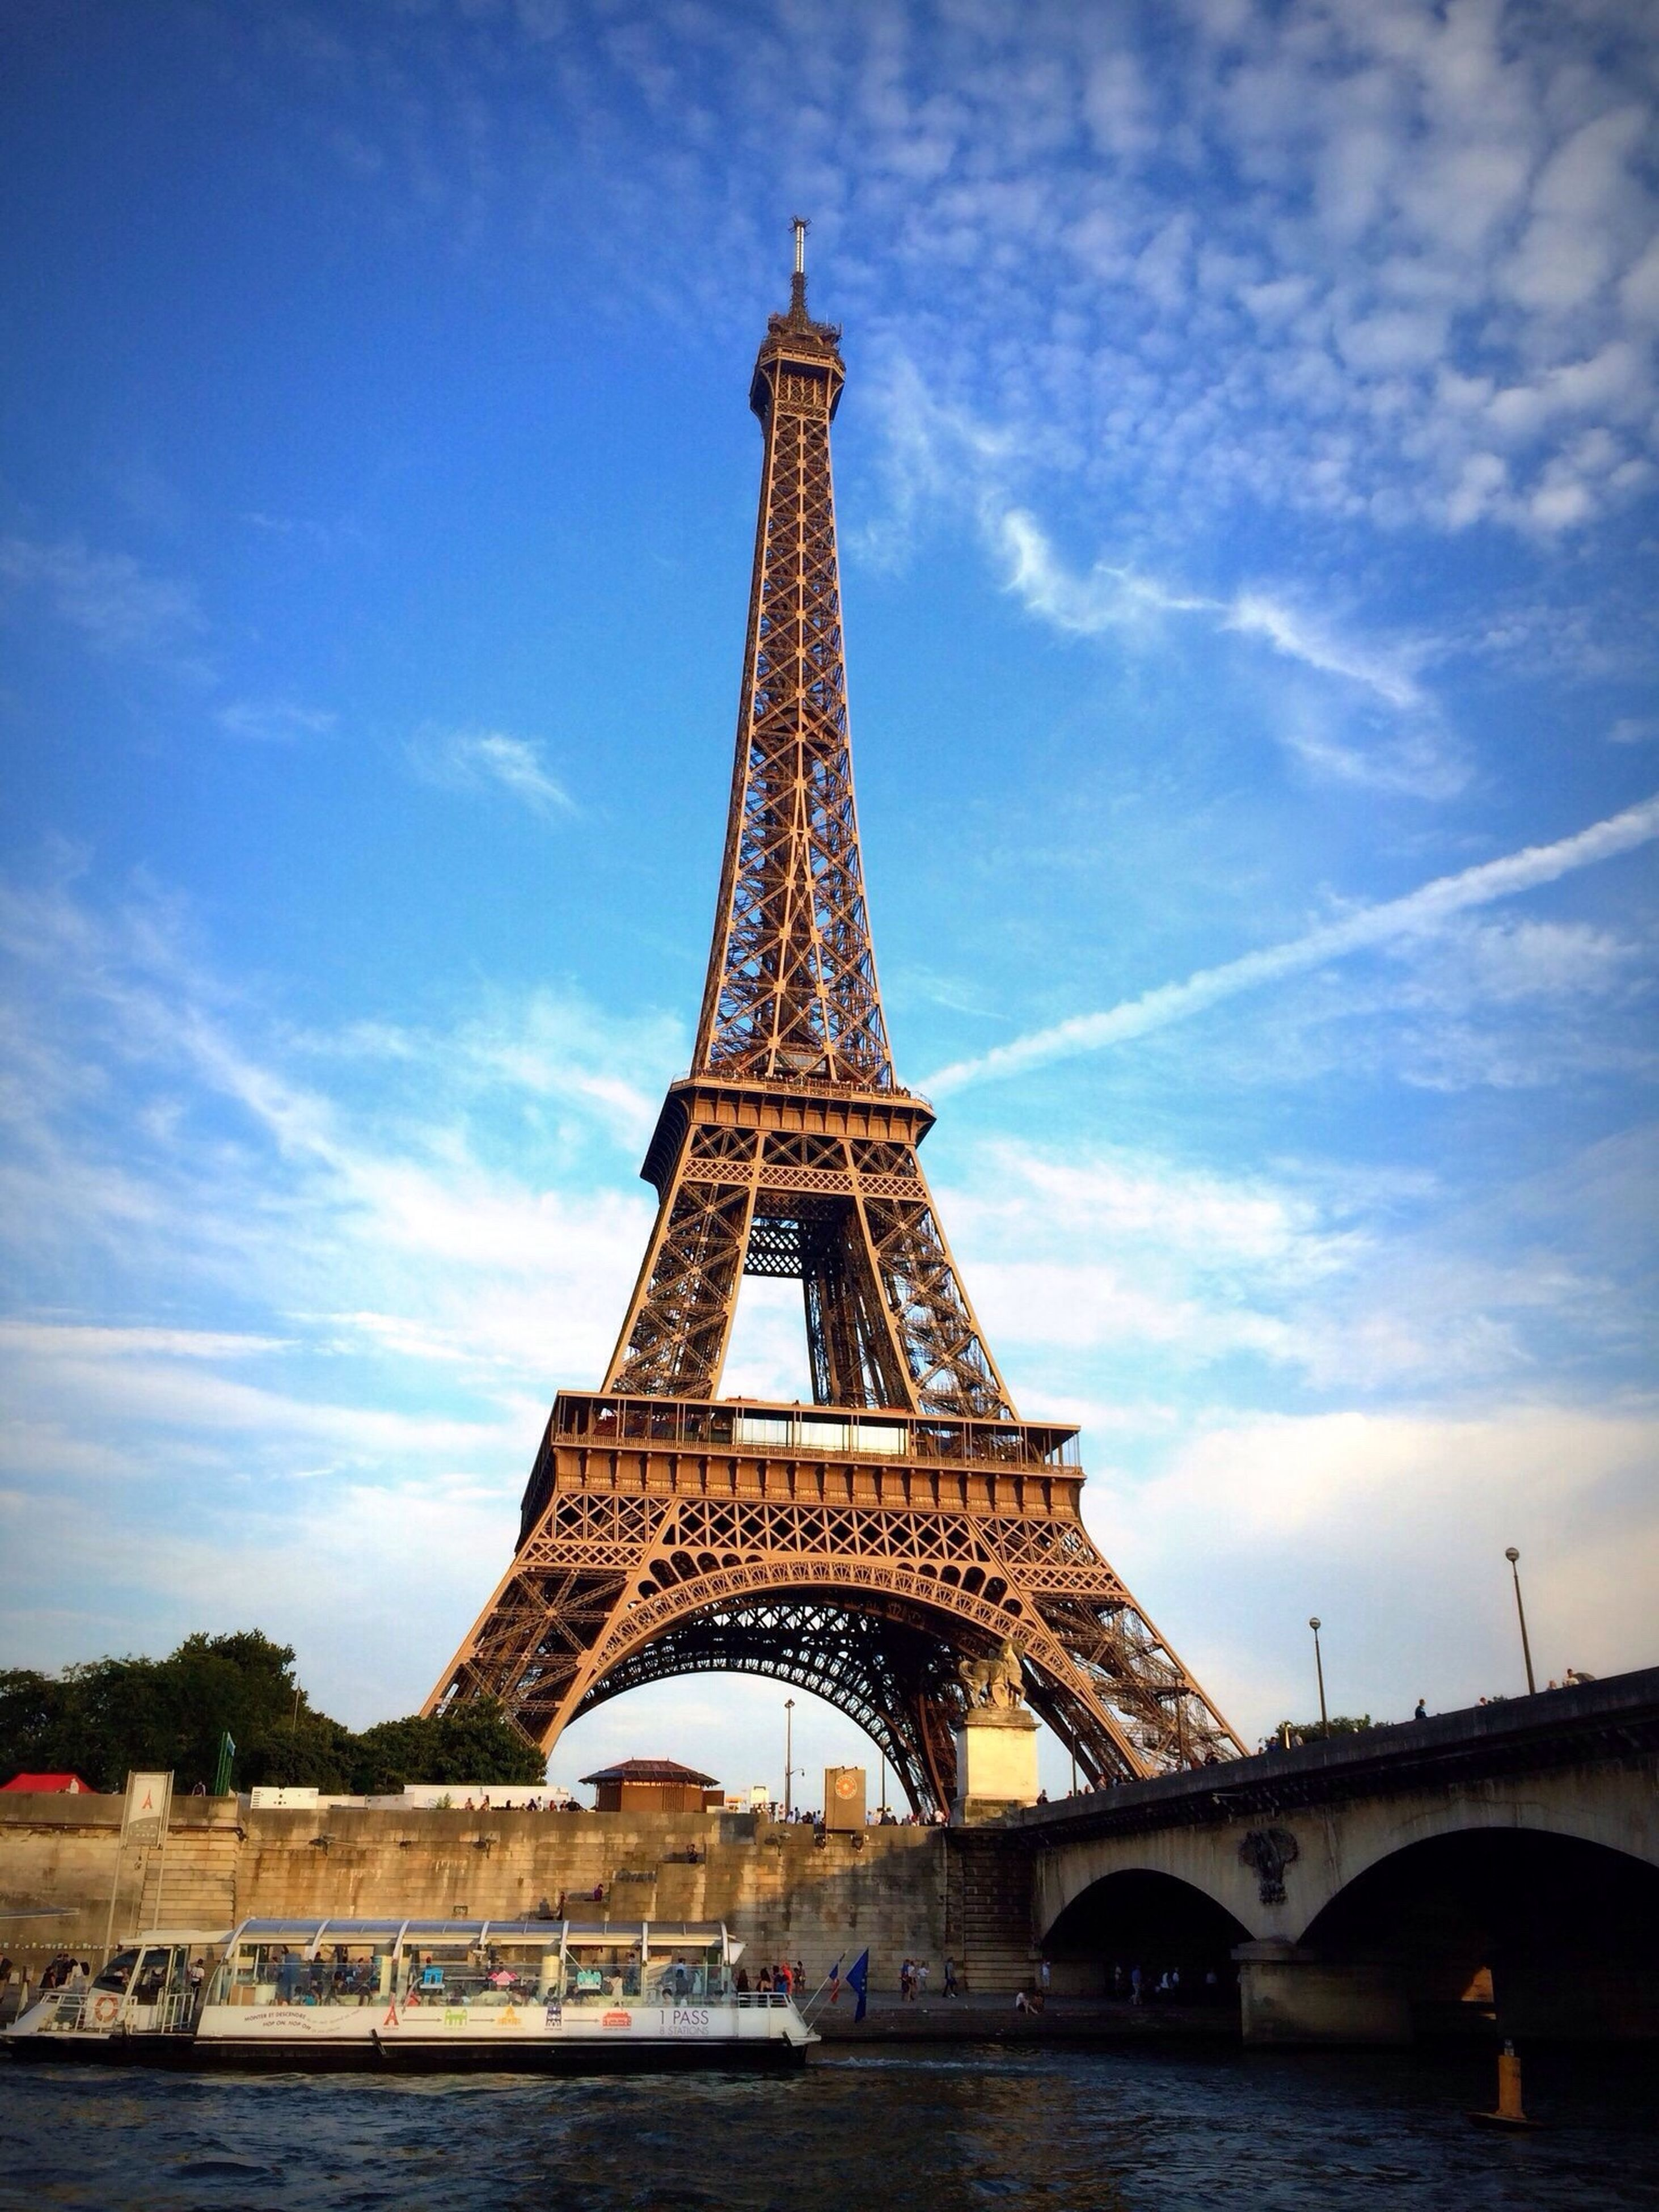 architecture, built structure, famous place, eiffel tower, international landmark, travel destinations, tourism, sky, travel, culture, capital cities, tower, water, history, cloud - sky, tall - high, metal, river, bridge - man made structure, low angle view